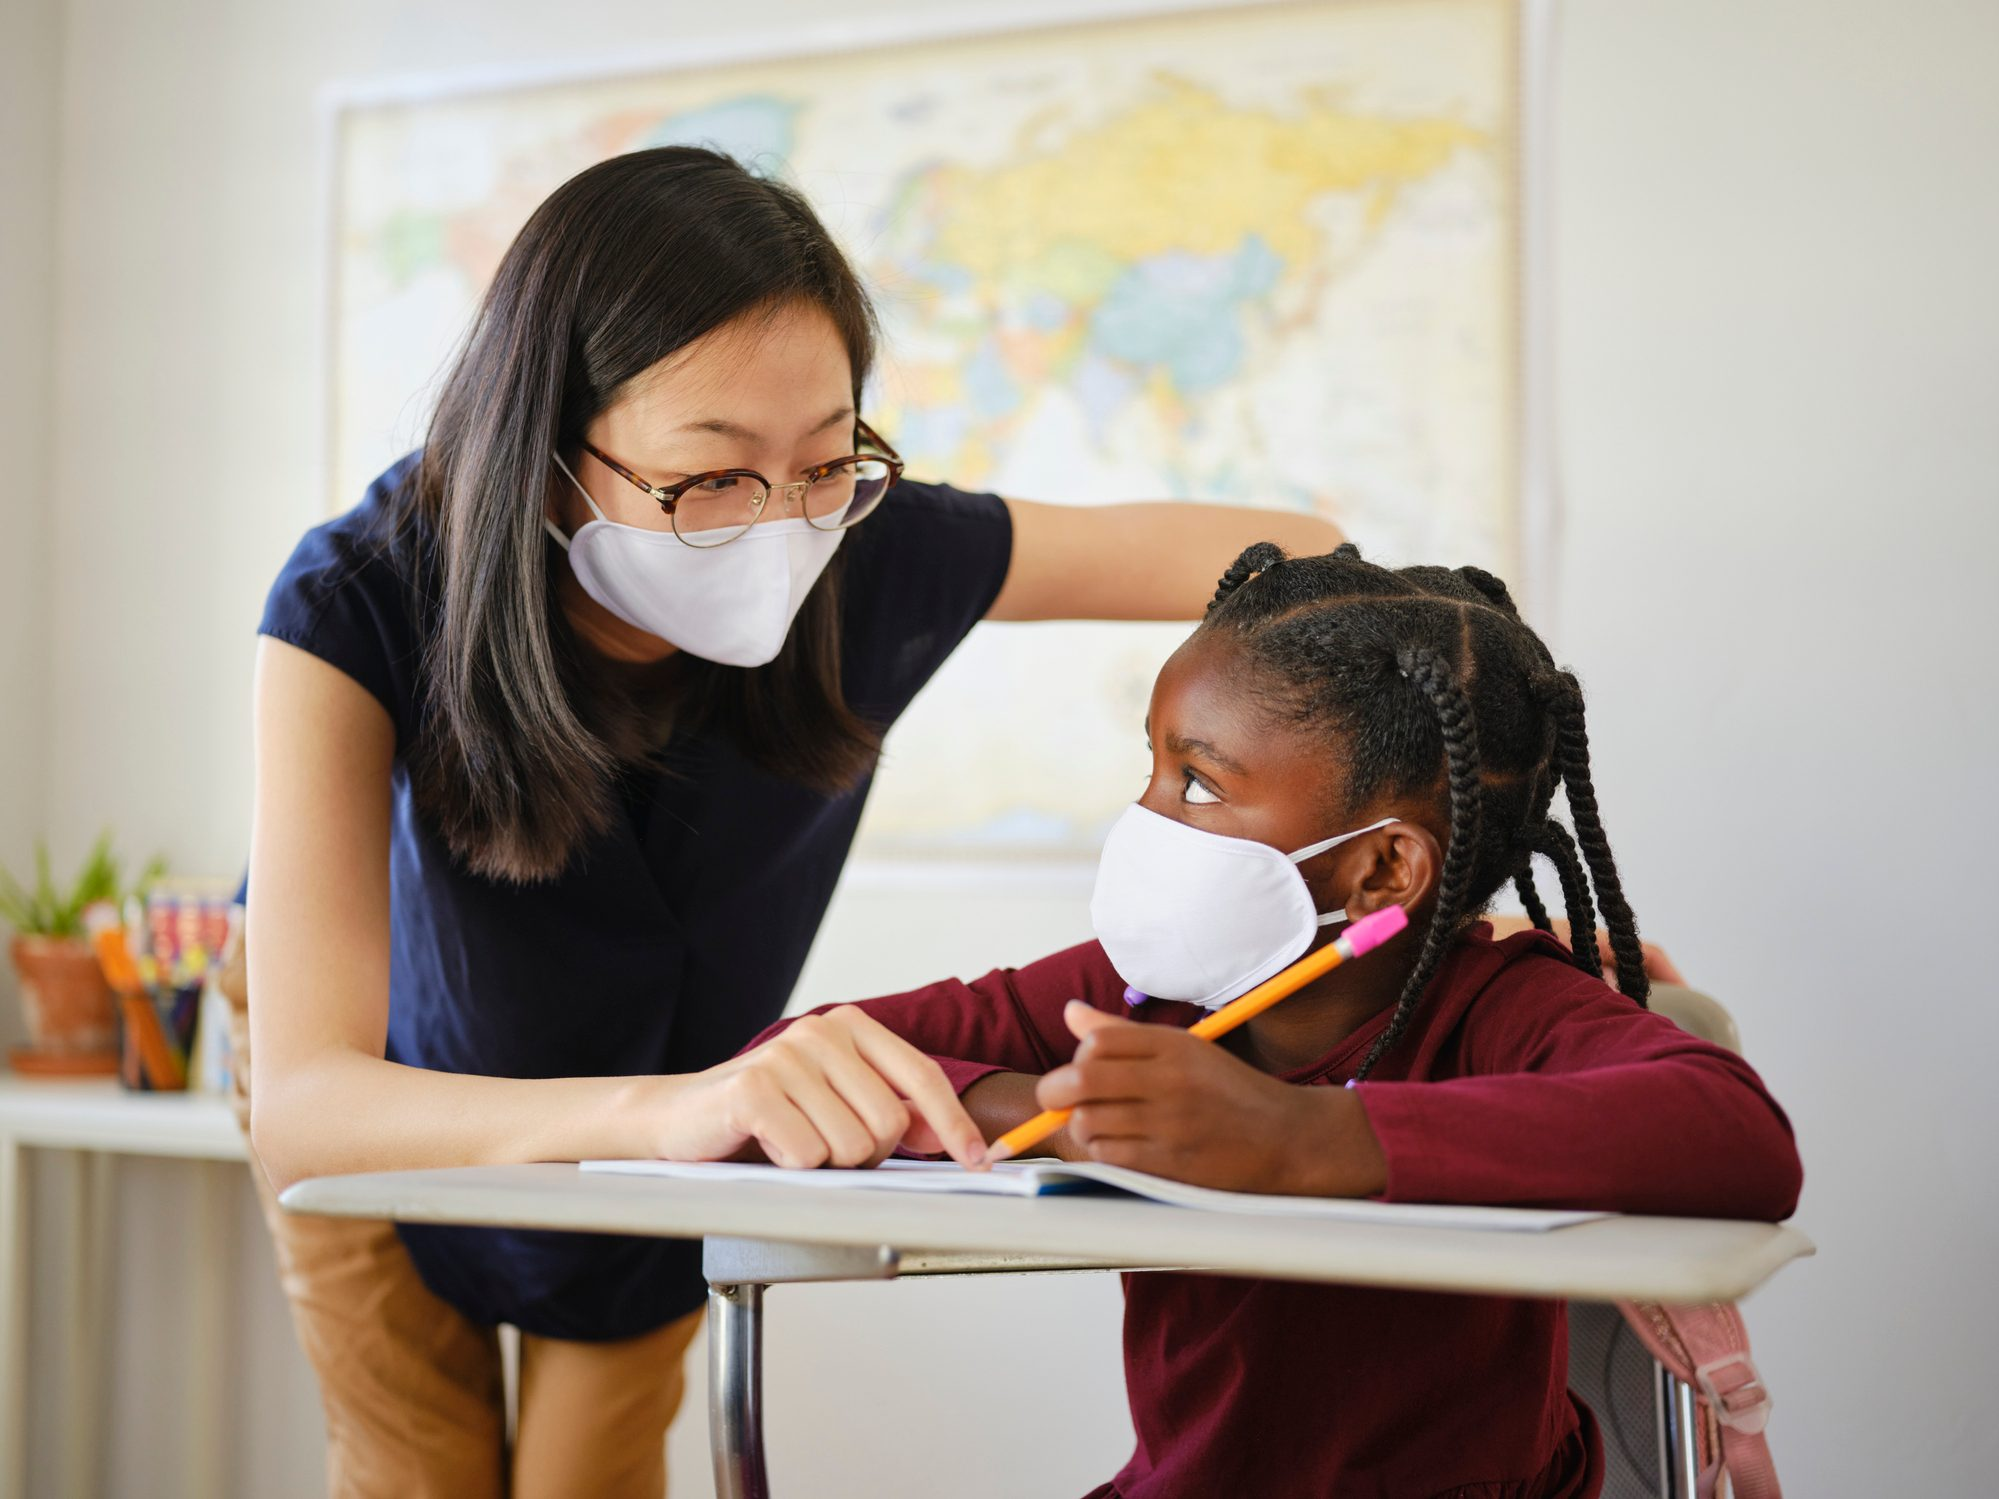 An Elementary School Student and Teacher in a Classroom